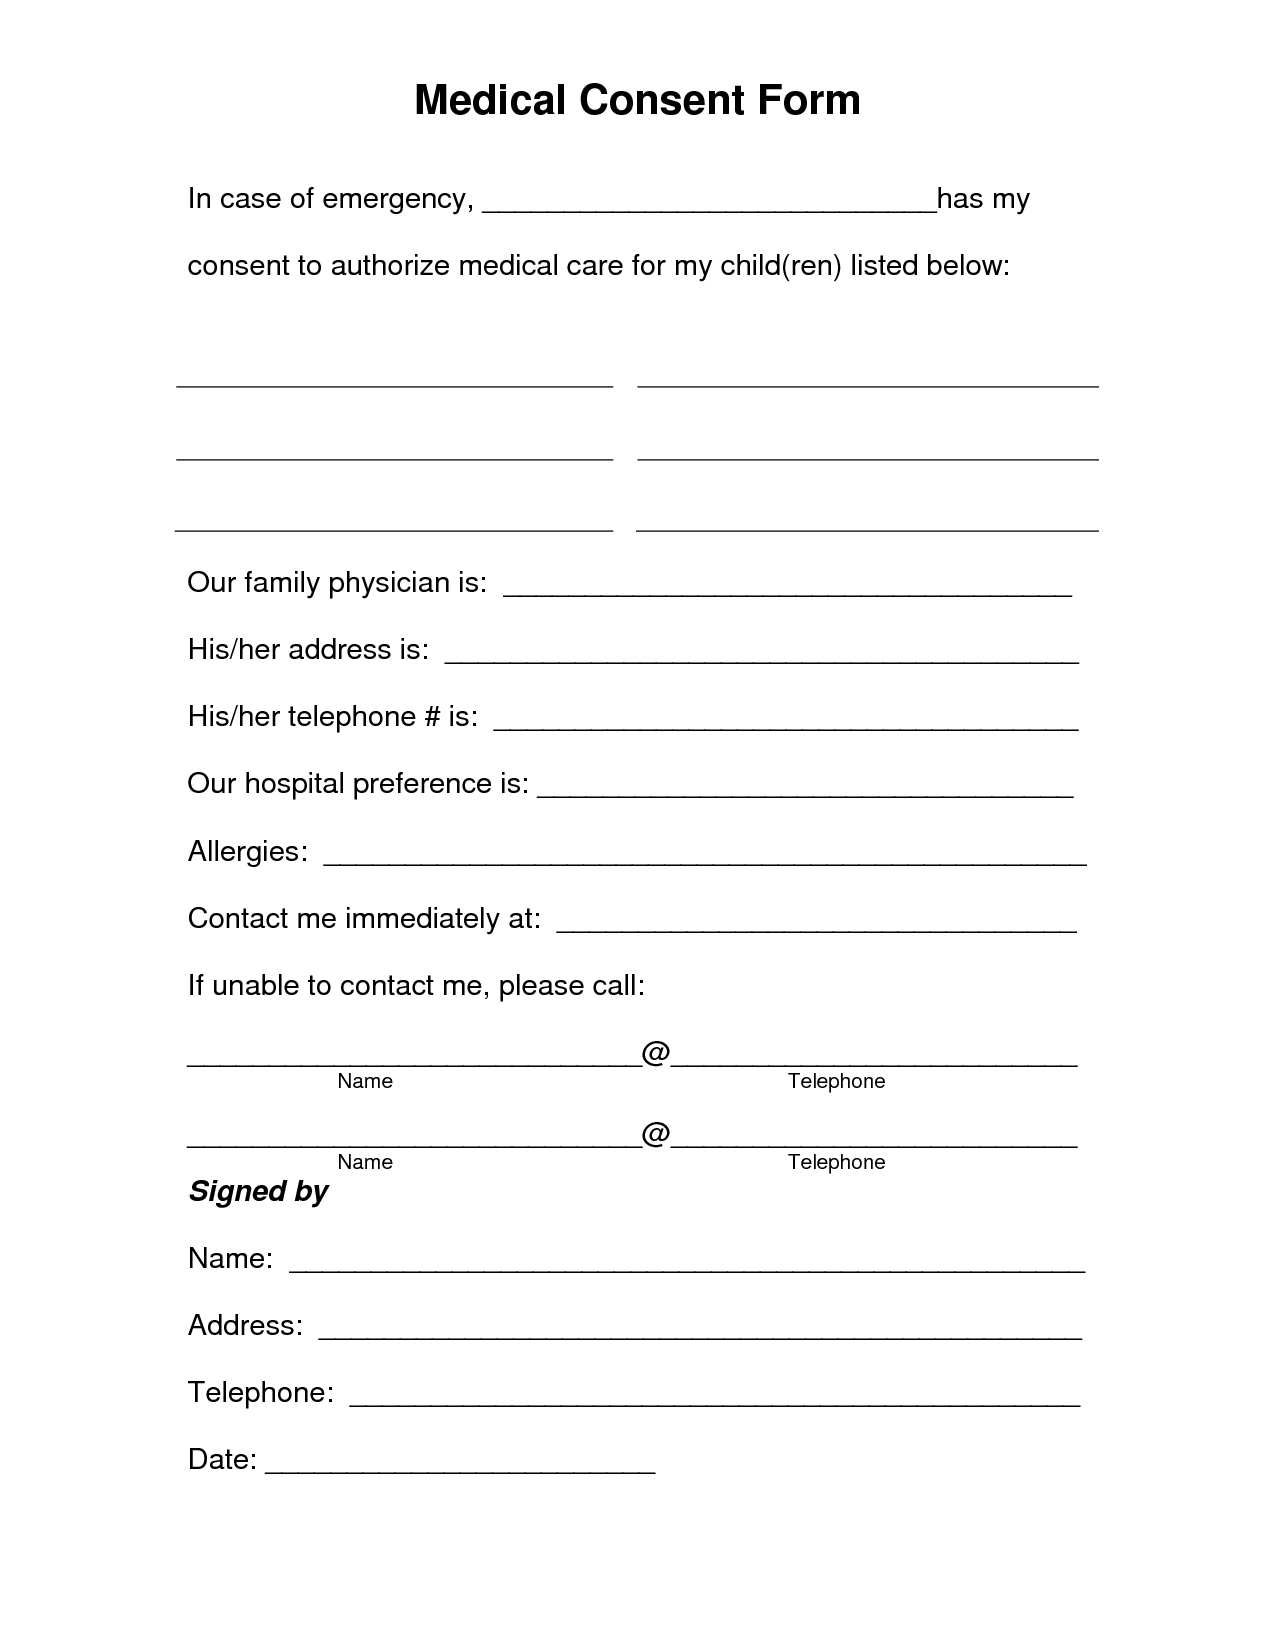 Free Printable Medical Consent Form | Free Medical Consent Form - Free Printable Medical Forms